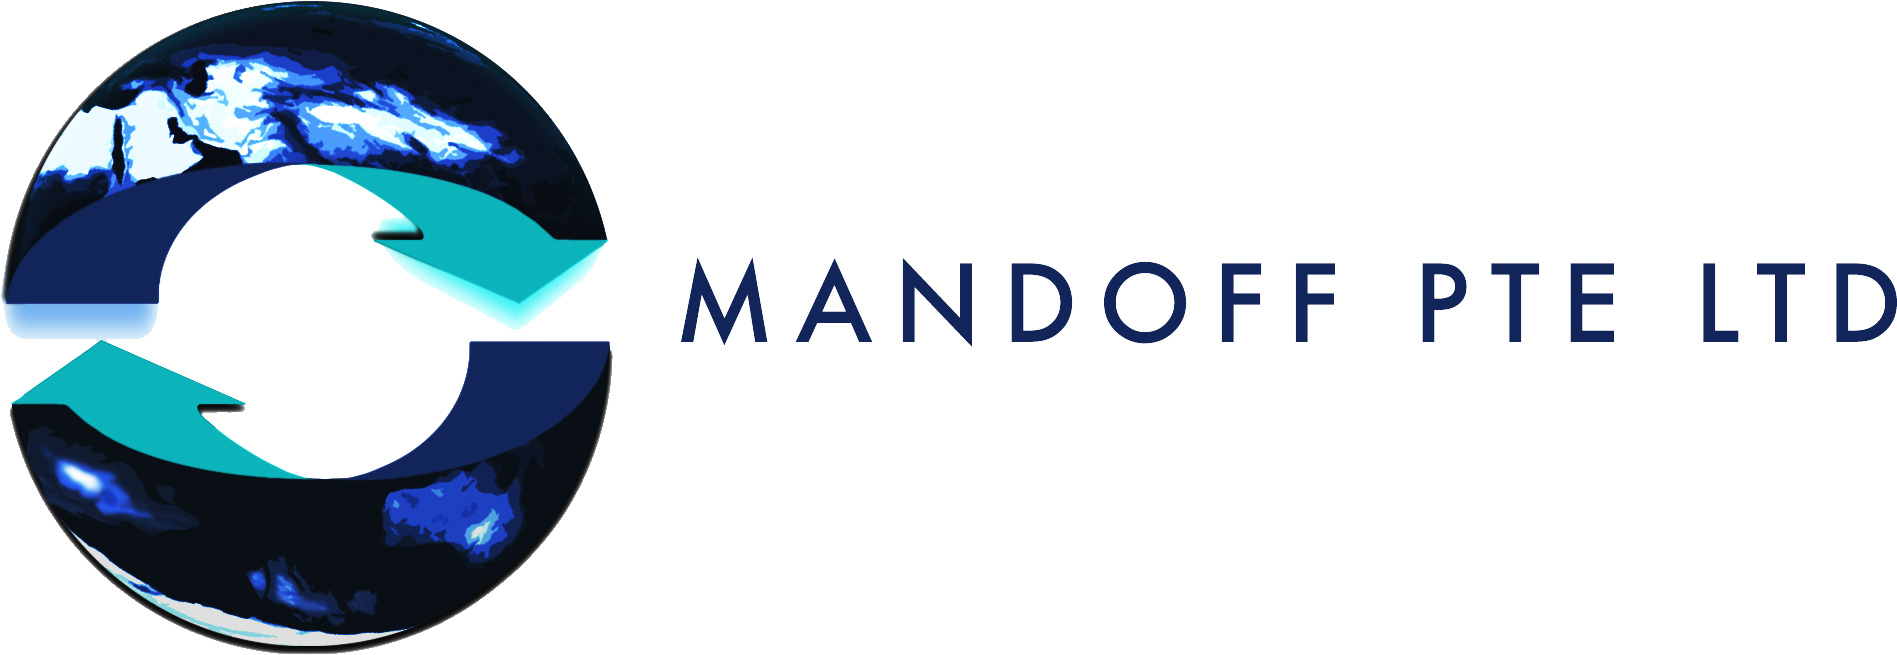 Mandoff Pte Ltd